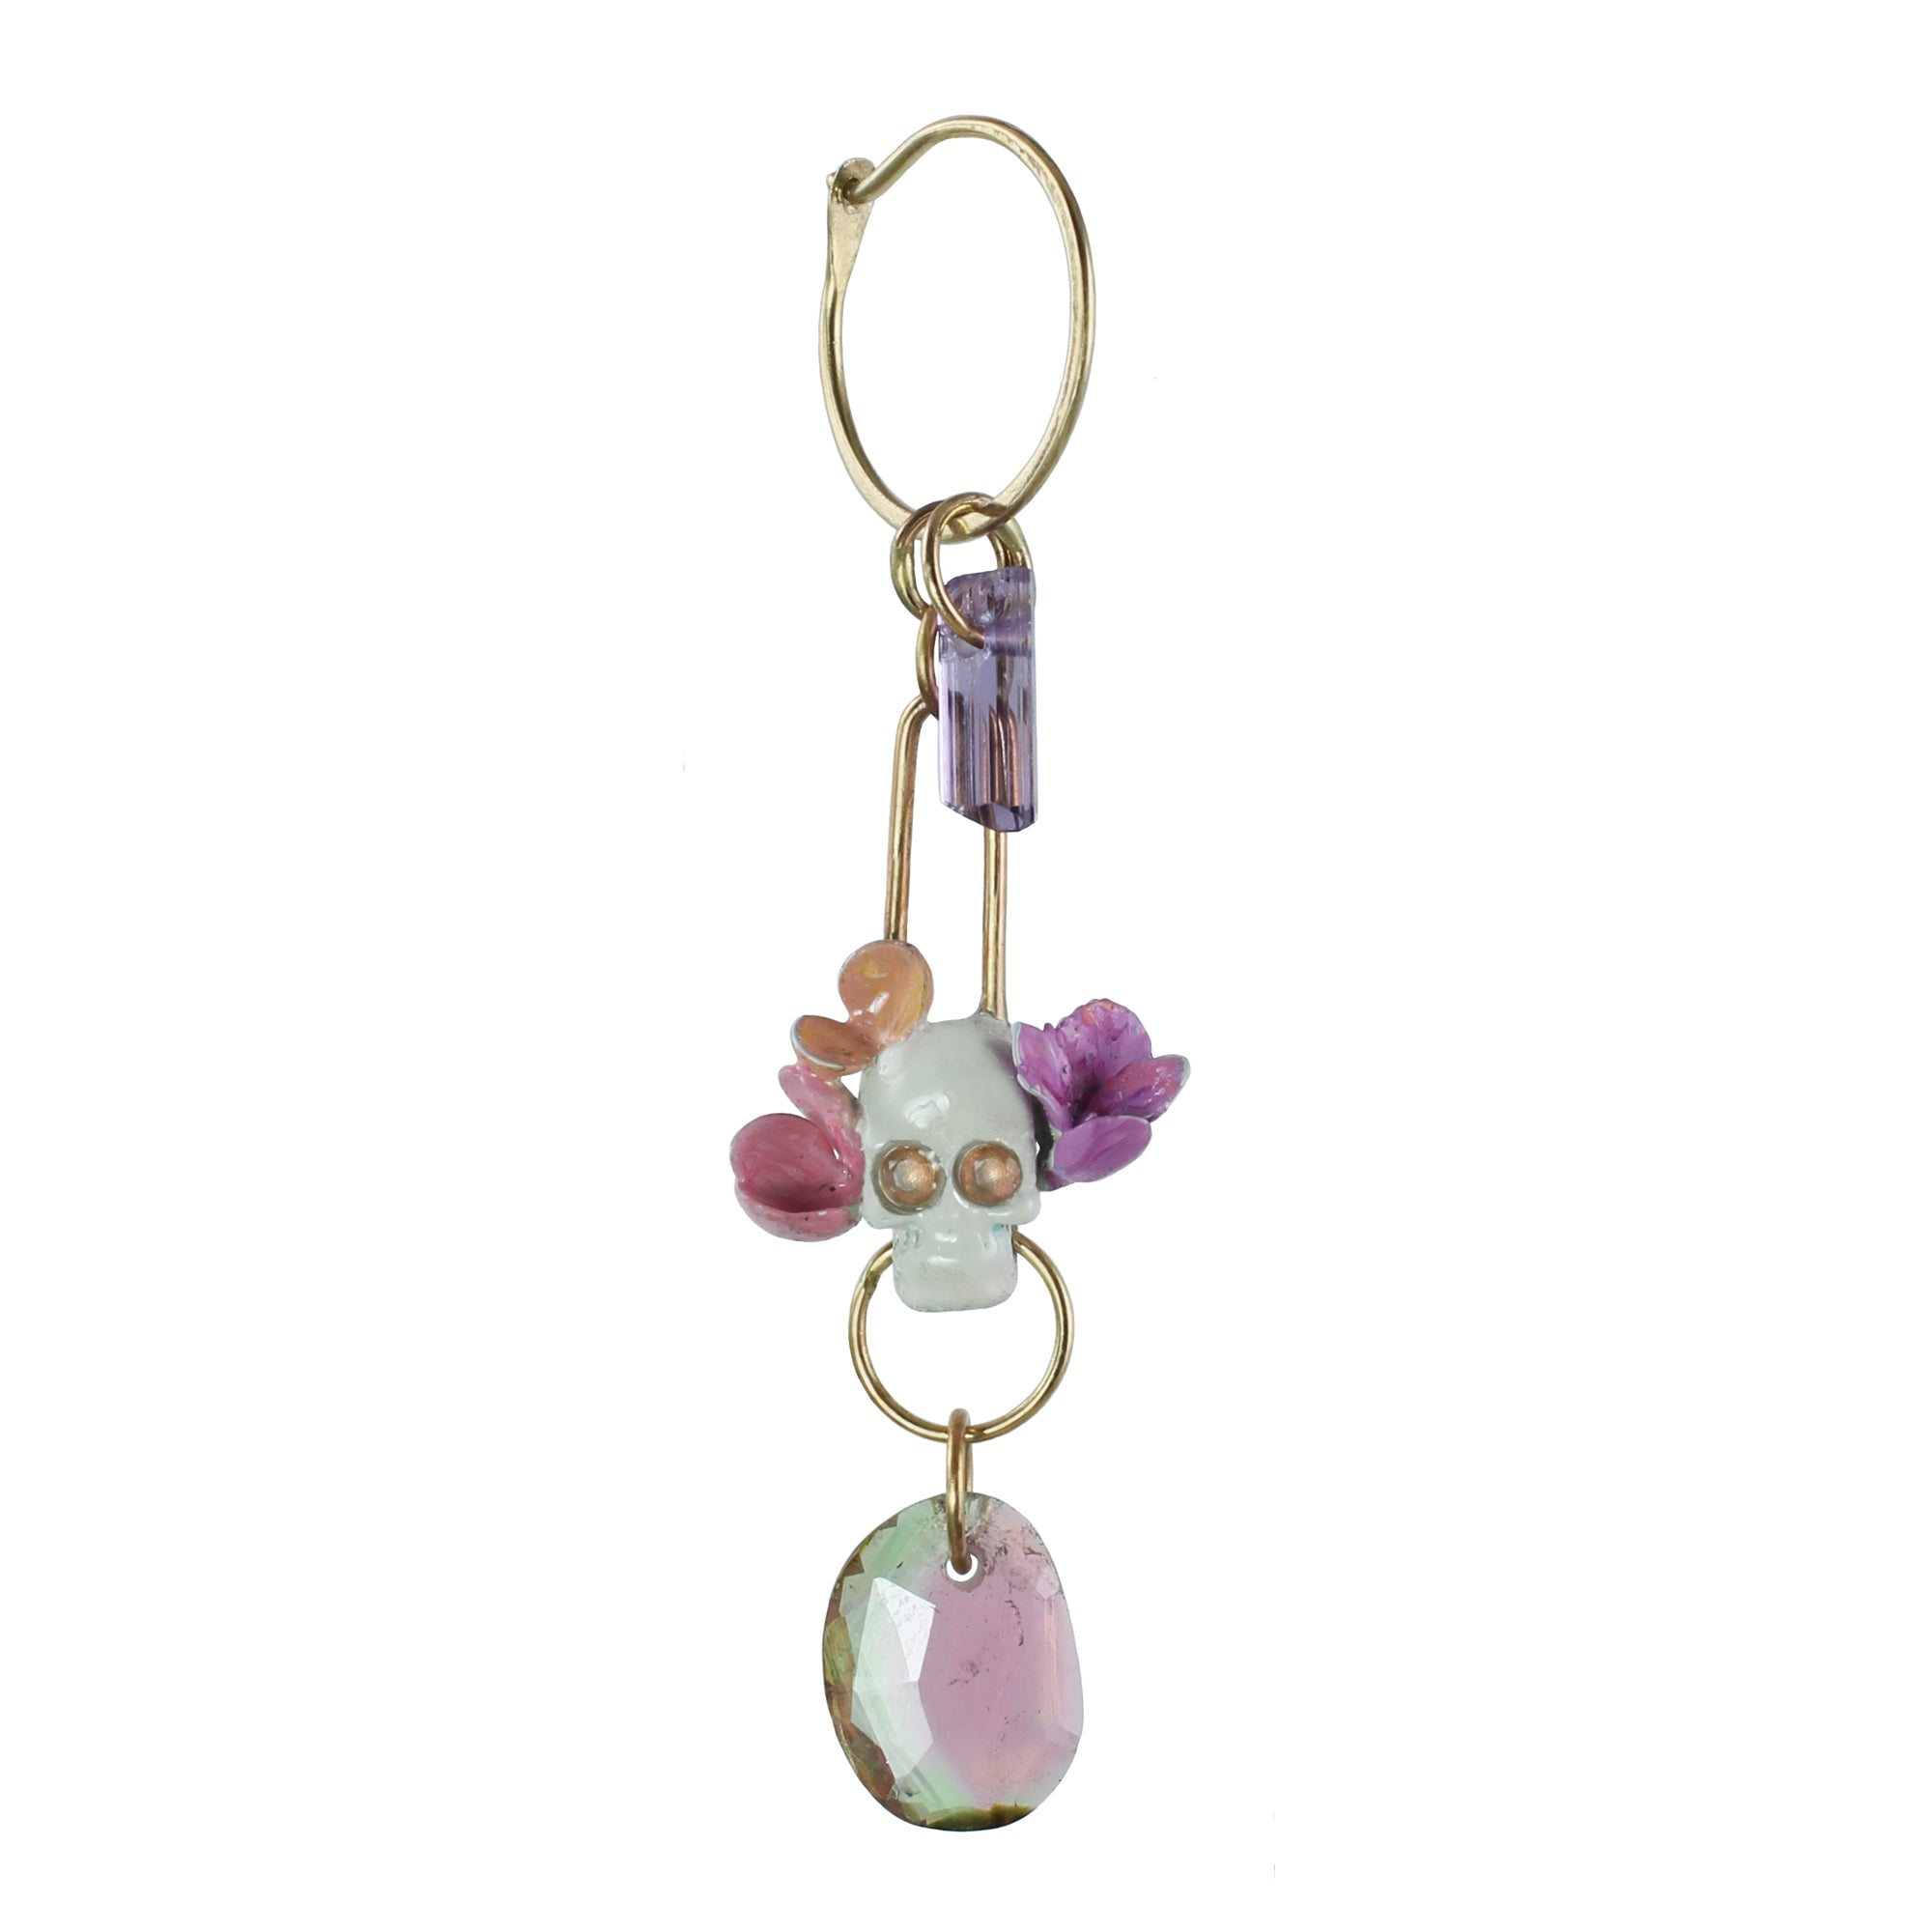 La Calavera Catrina Single Earring with Watermelon Tourmaline